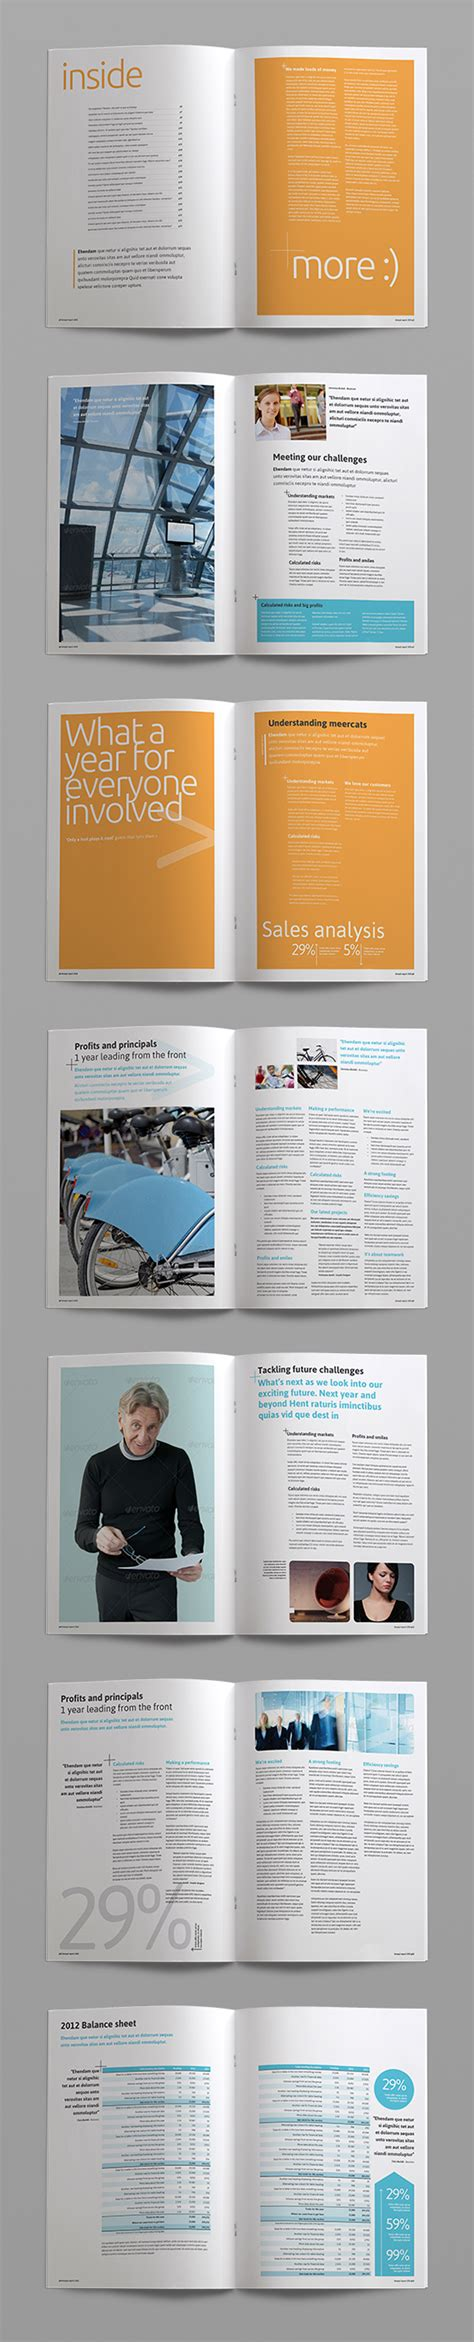 annual report corporate indesign brochure template crs